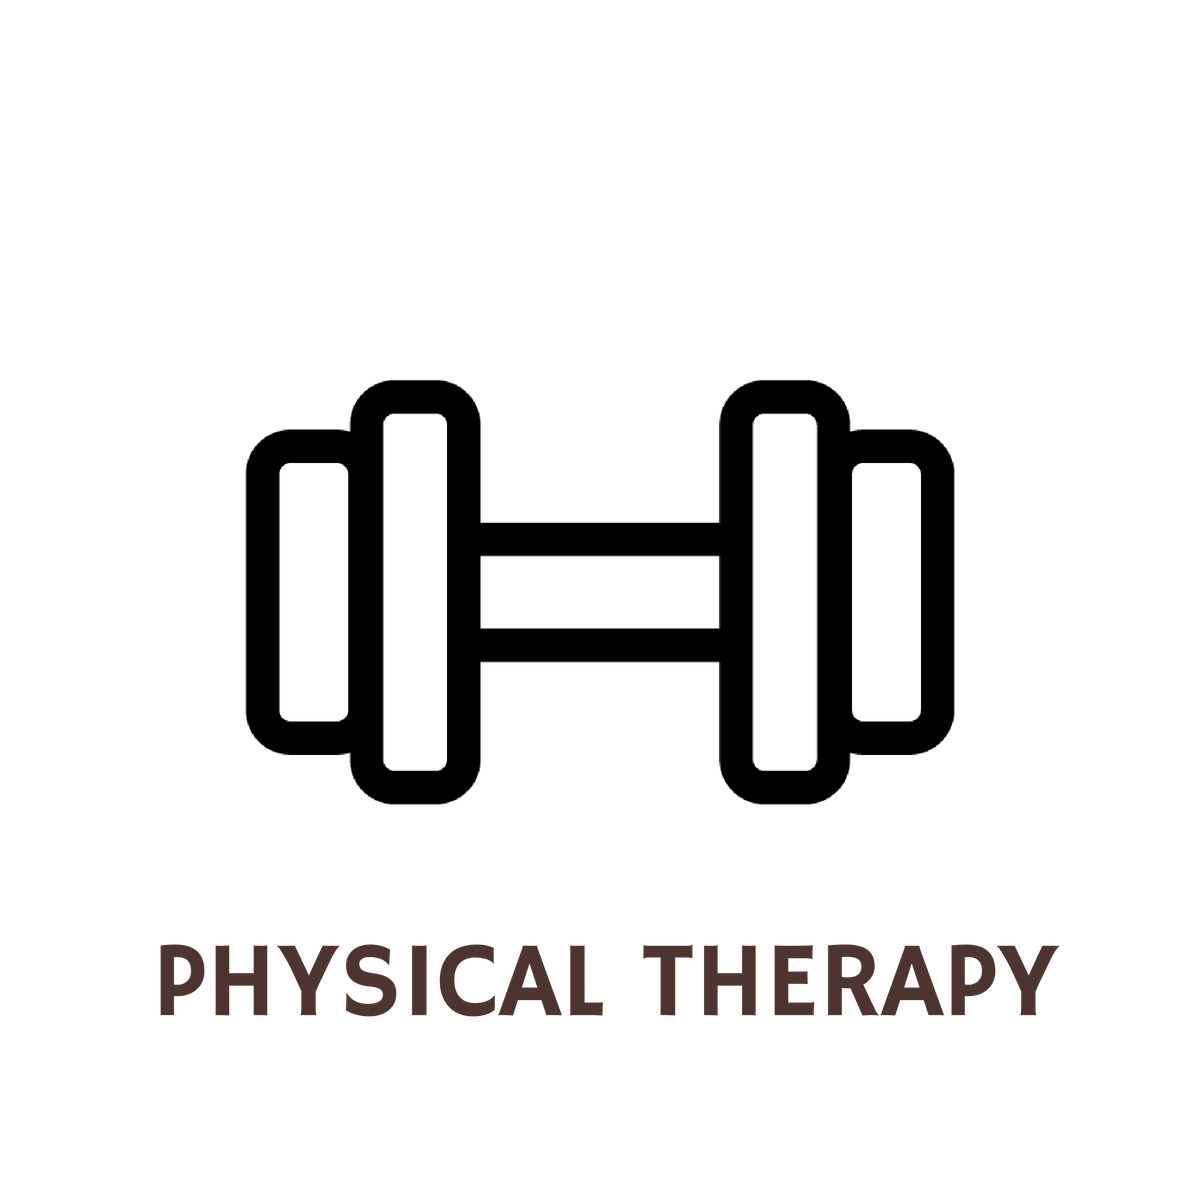 What Can I Do With A Degree In Physical Therapy